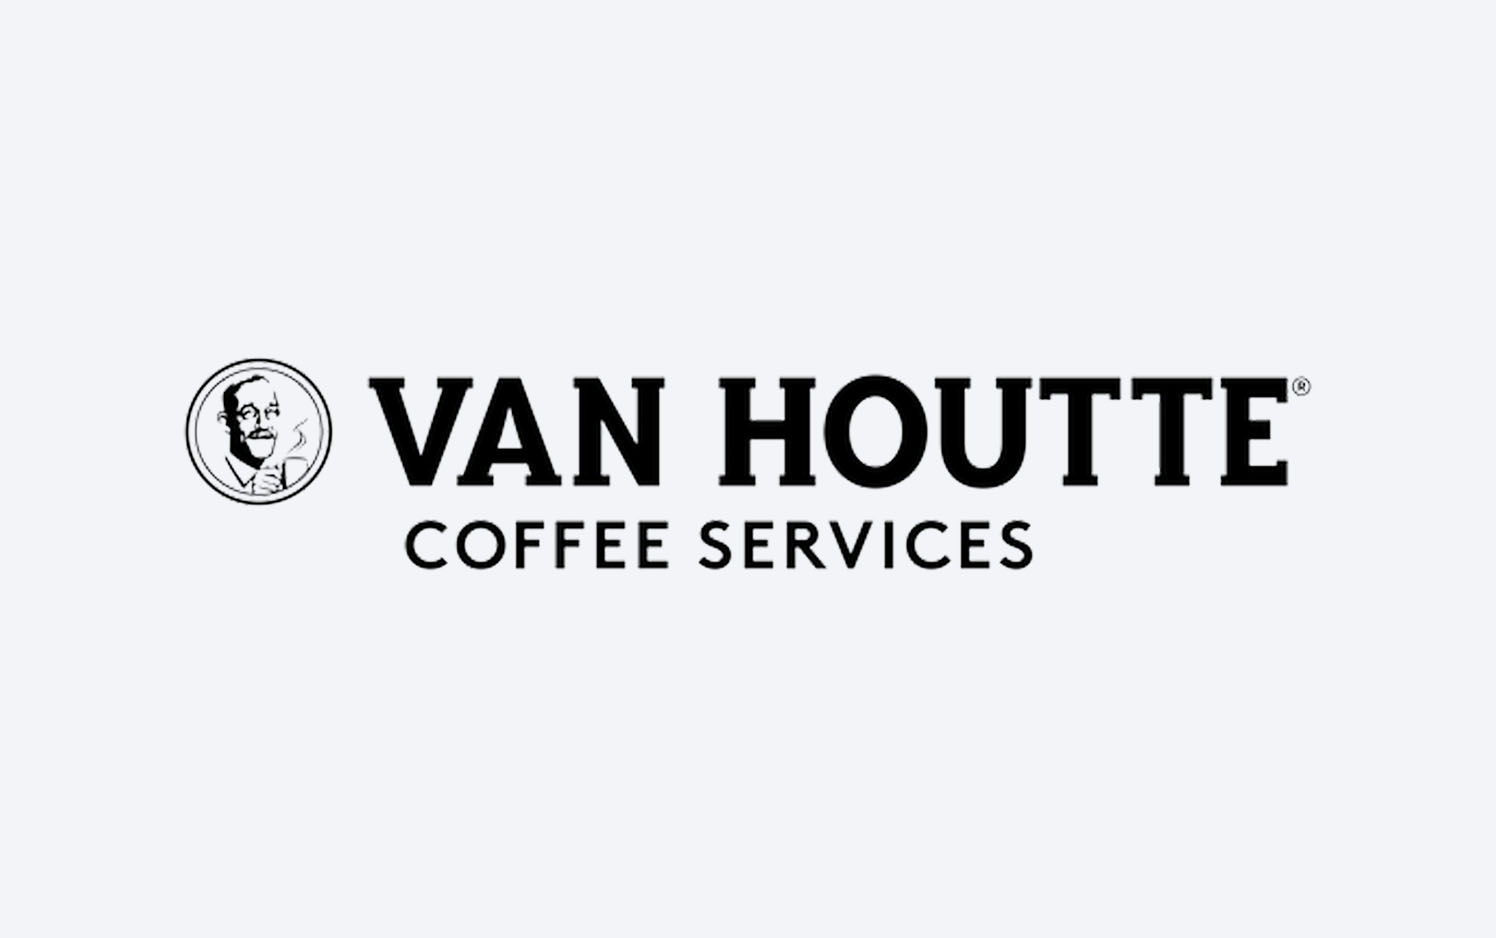 Van Houtte Coffee Services logo